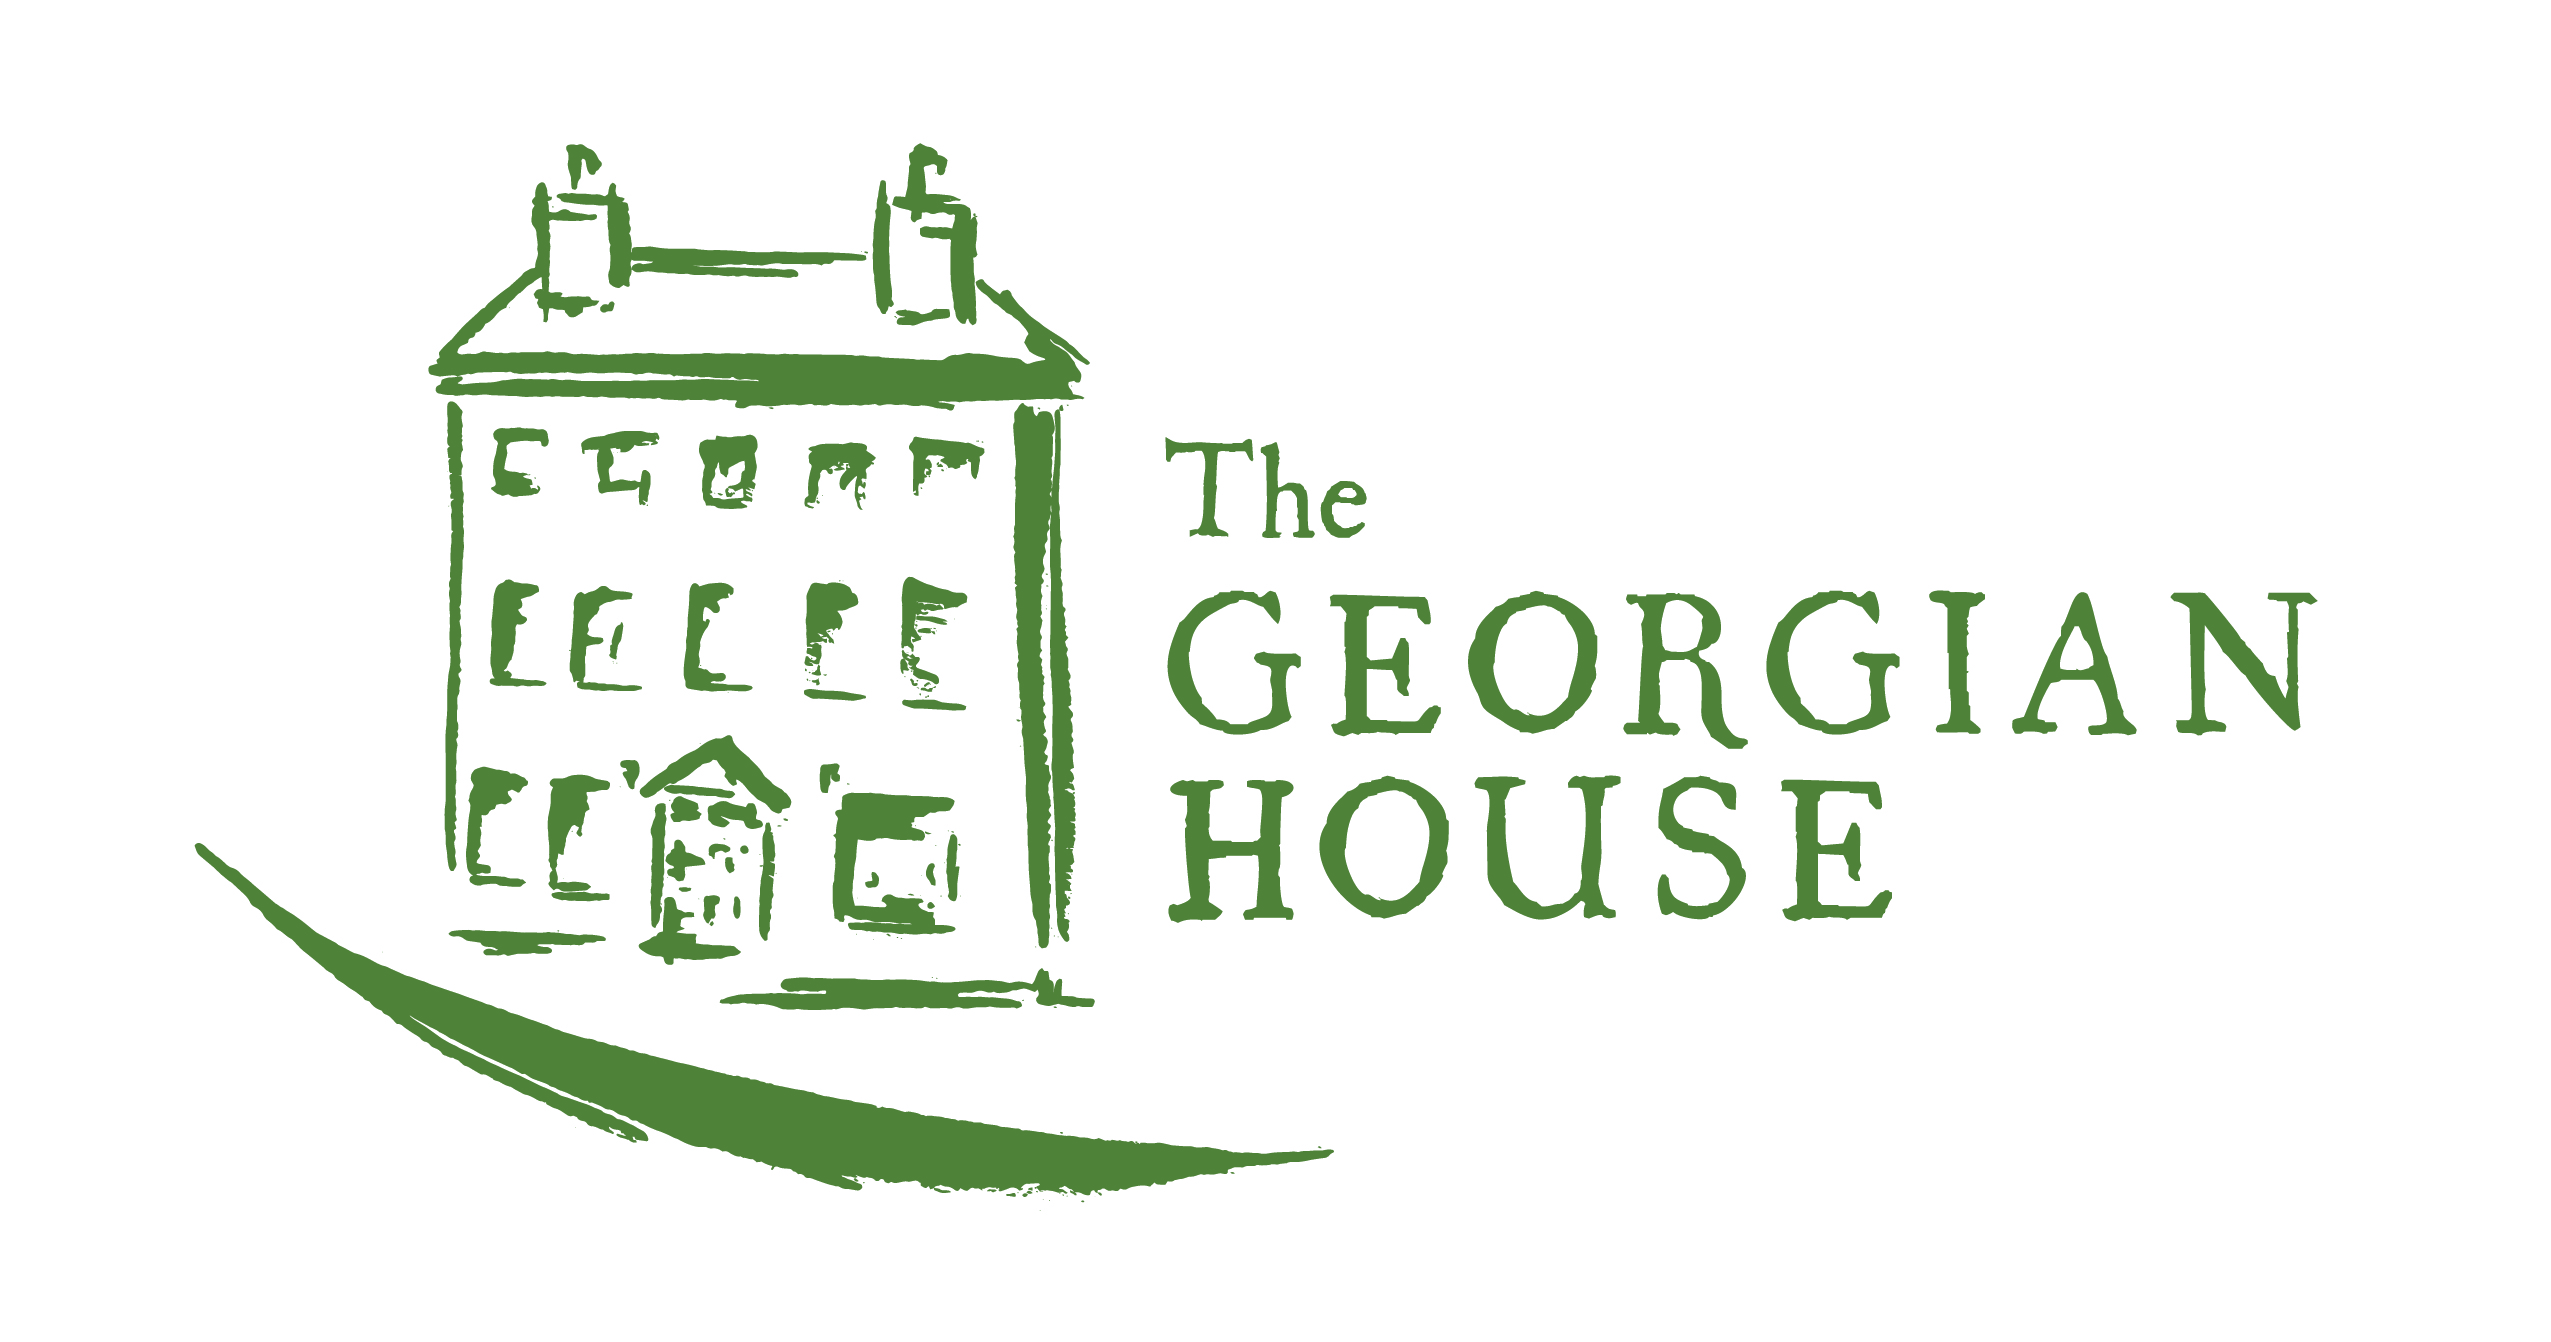 The Georgian Hotel logo